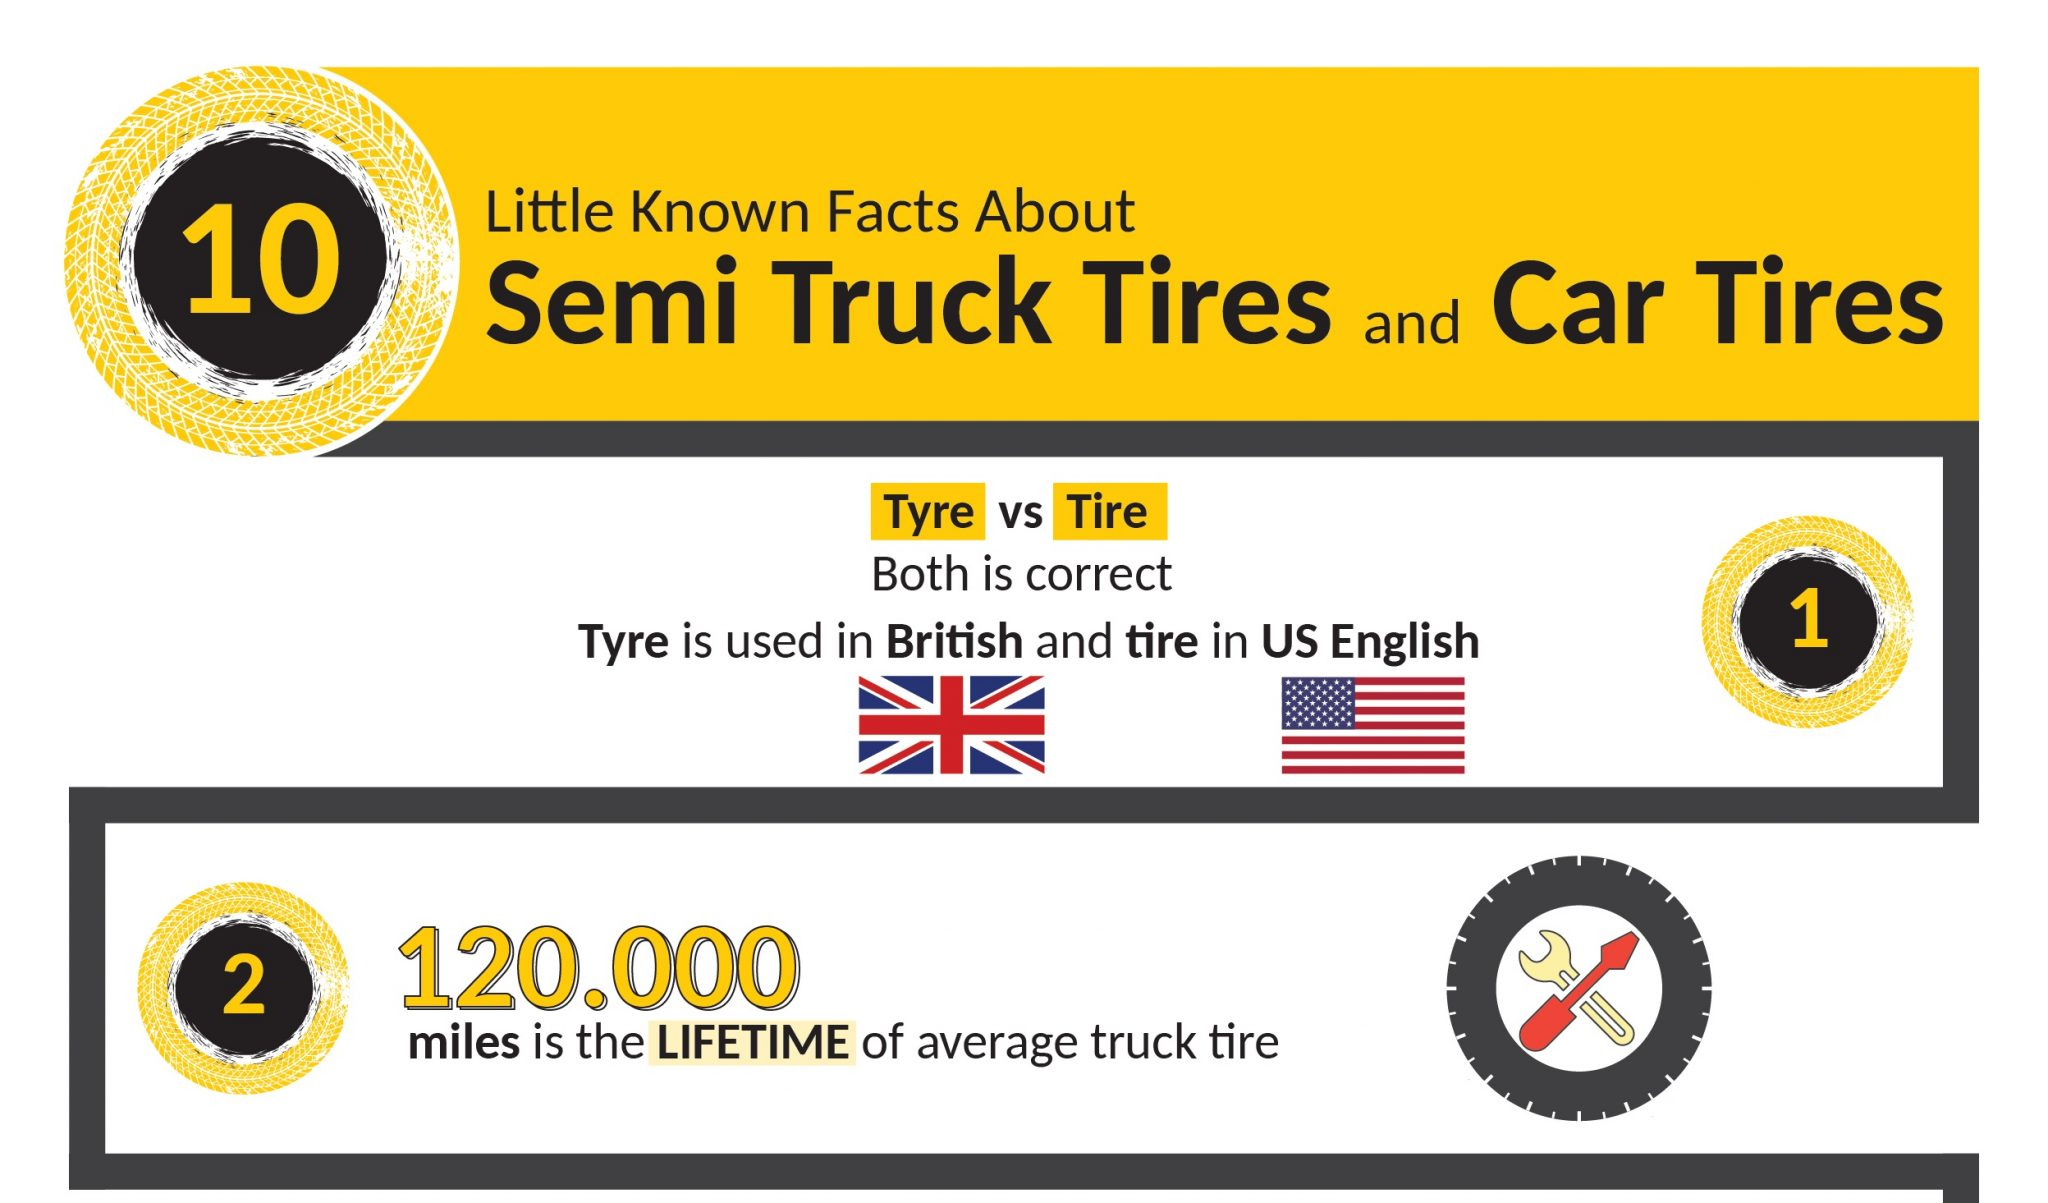 INFOGRAPHIC 10 Little Known Facts About Semi Truck Tires and Car Tires